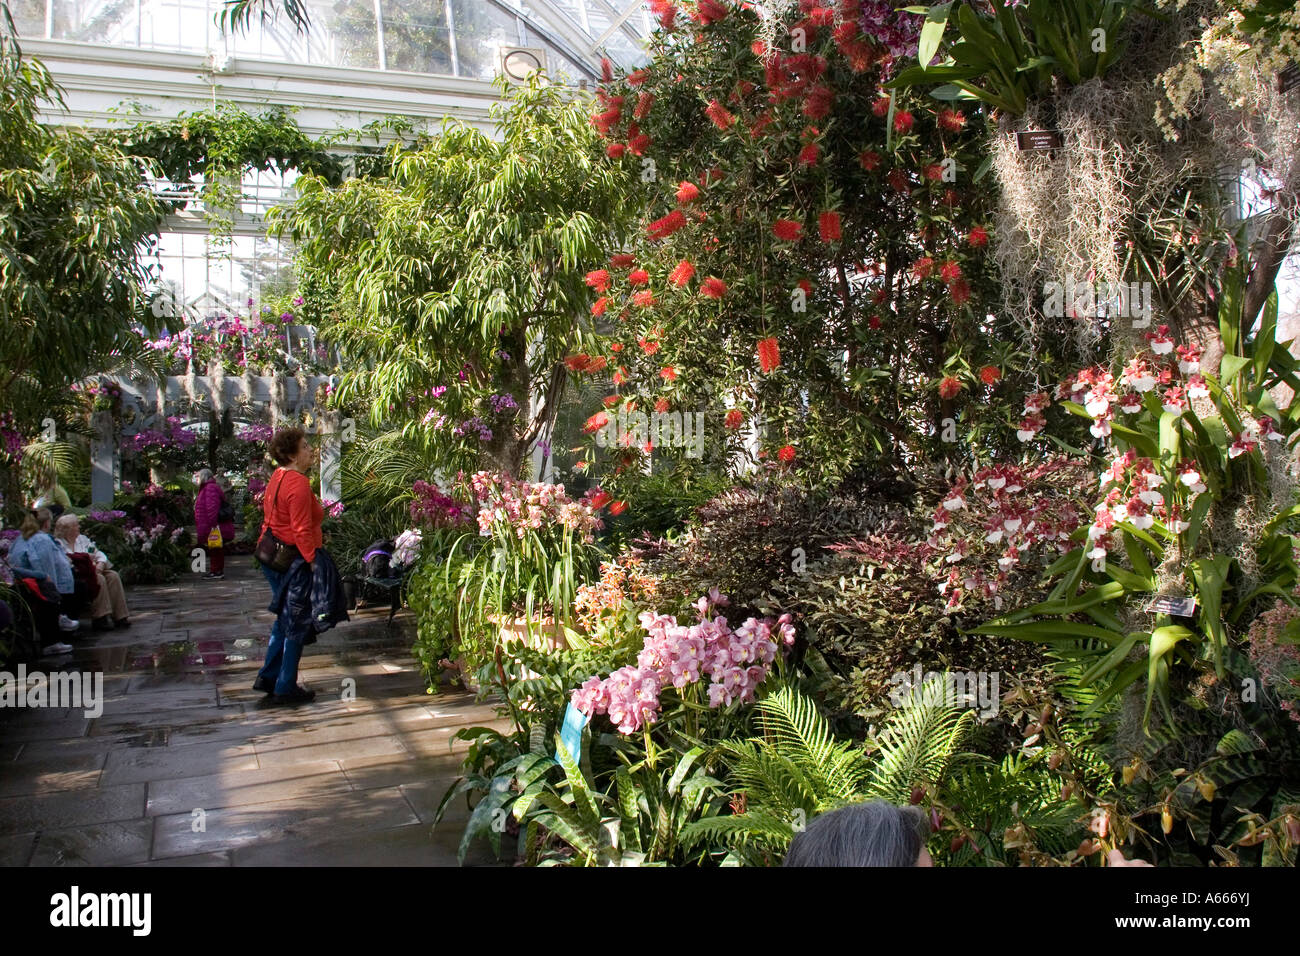 New York Botanical Gardens Orchid Show Stock Photos & New York ...